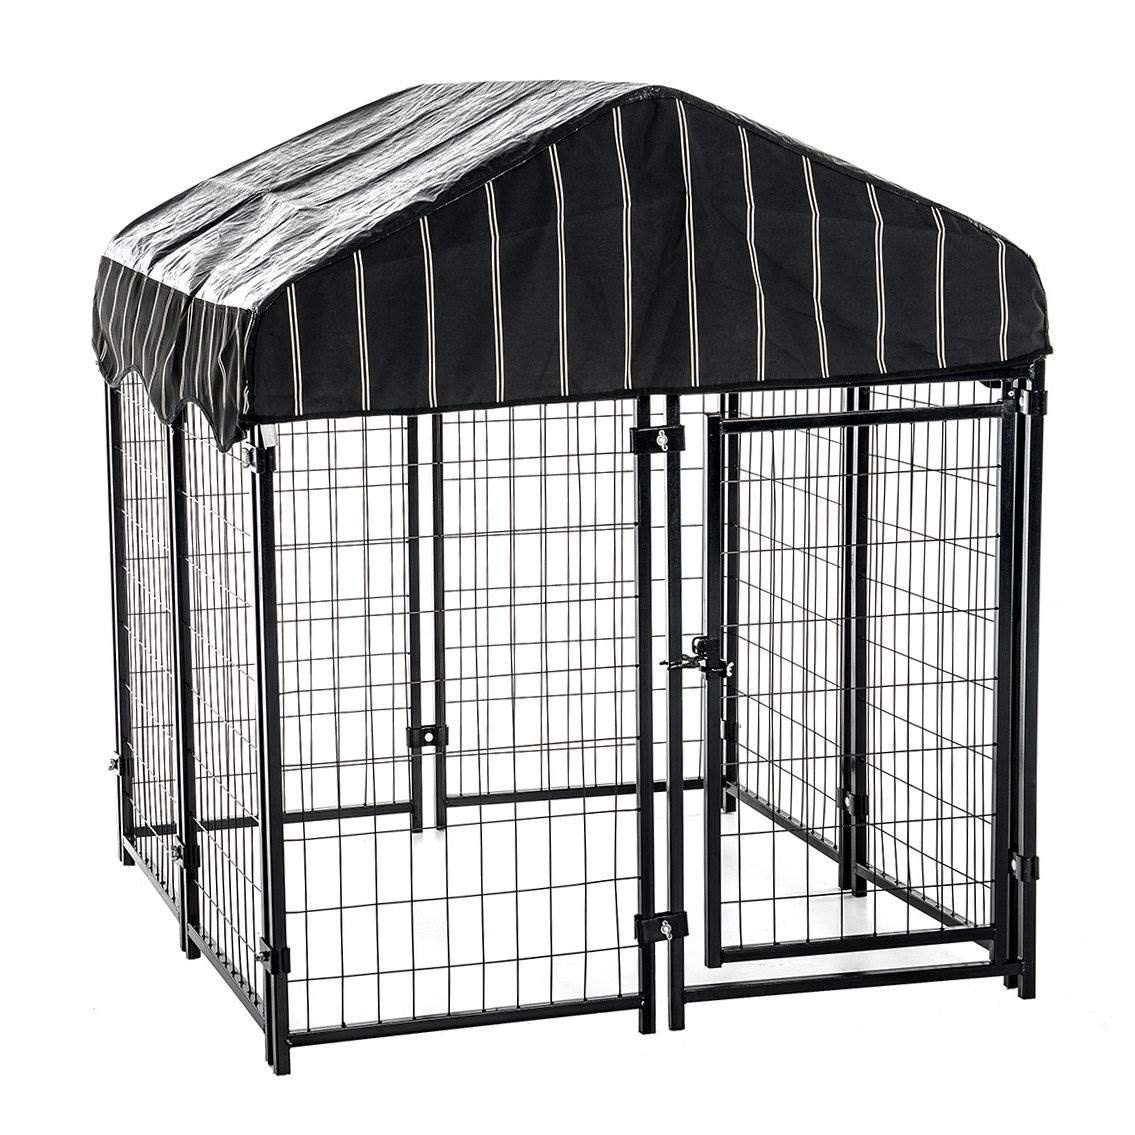 Lucky Dog 4'6''H x 4'L x 4'W Heavy Duty Covered Welded Wire Dog Fence Pet Kennel by Lucky Dog